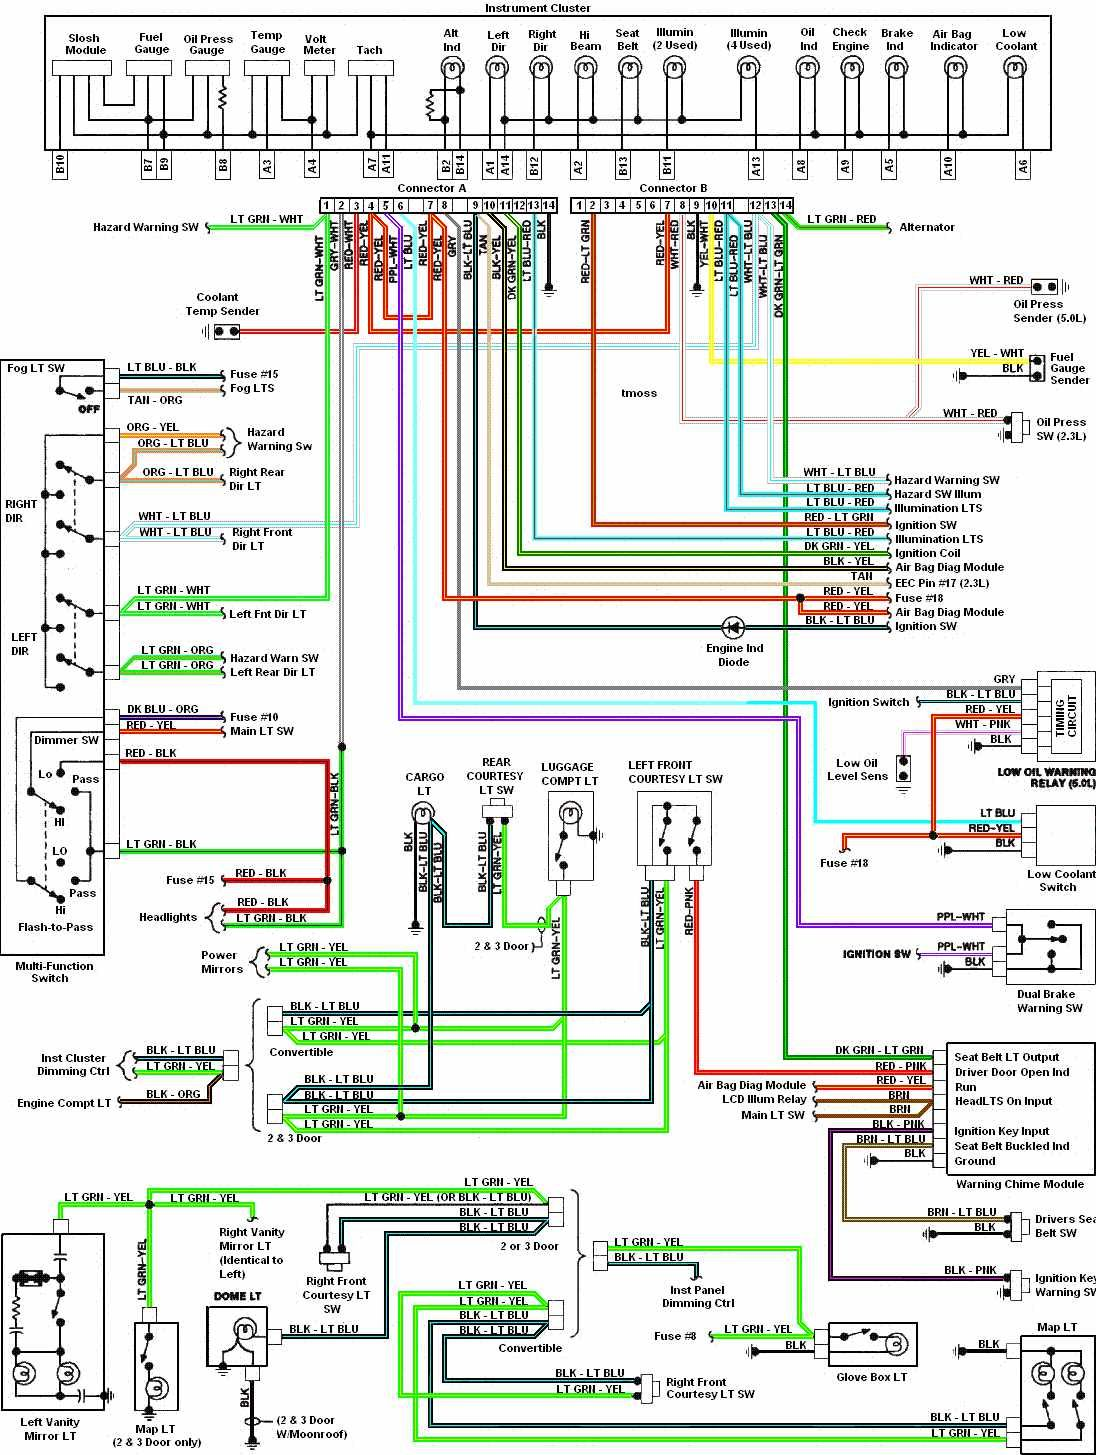 Awesome 1969 Mustang Dash Wiring Diagram Wiring Diagram Wiring Cloud Geisbieswglorg